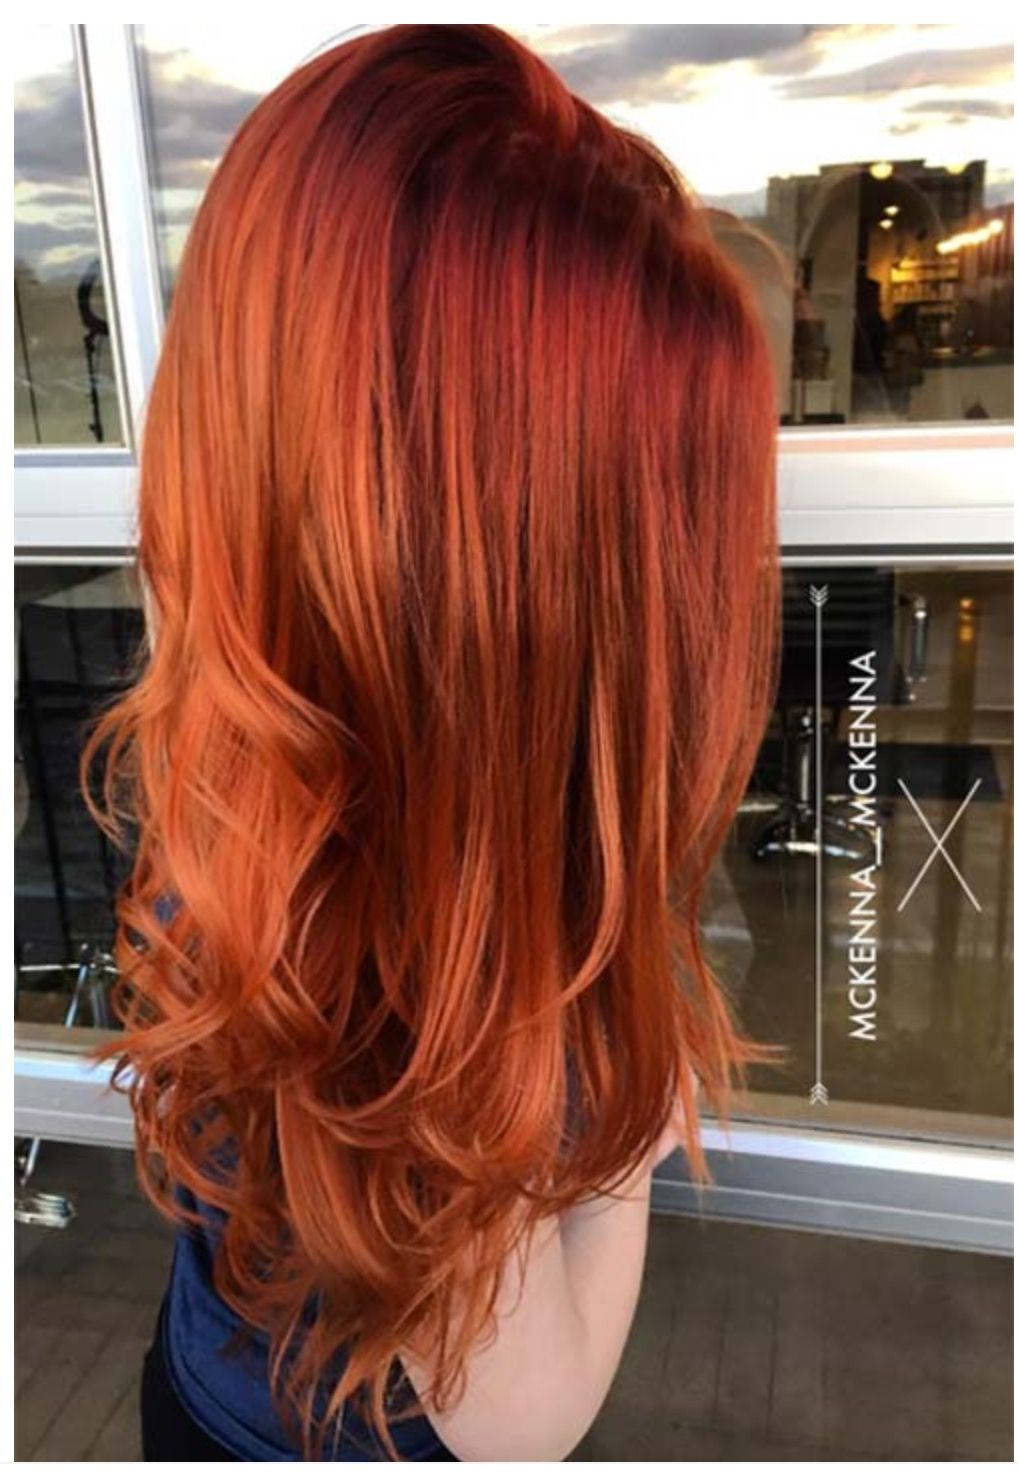 47 Copper Hair Color Shades For Every Skin Tone